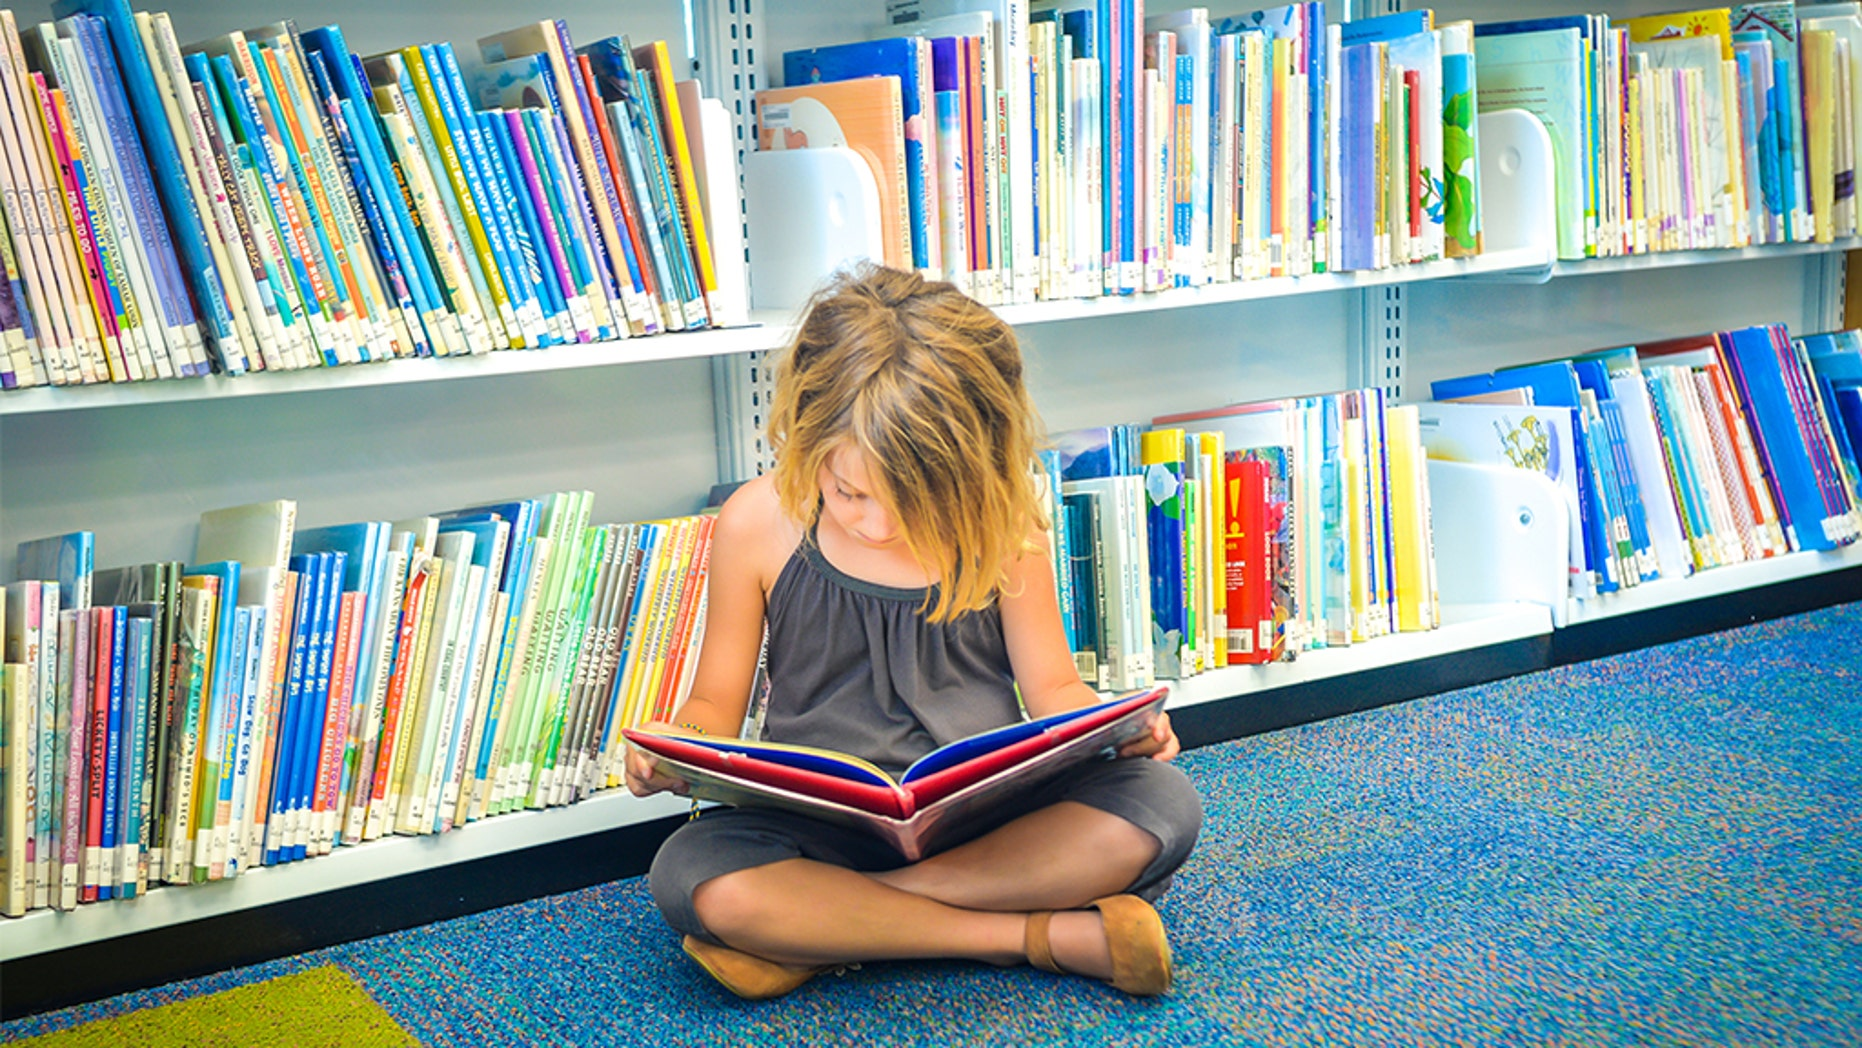 Schools in Barcelona have removed 200 children's books including some classic fairytales because they perpetuate sexist stereotypes. (istock)